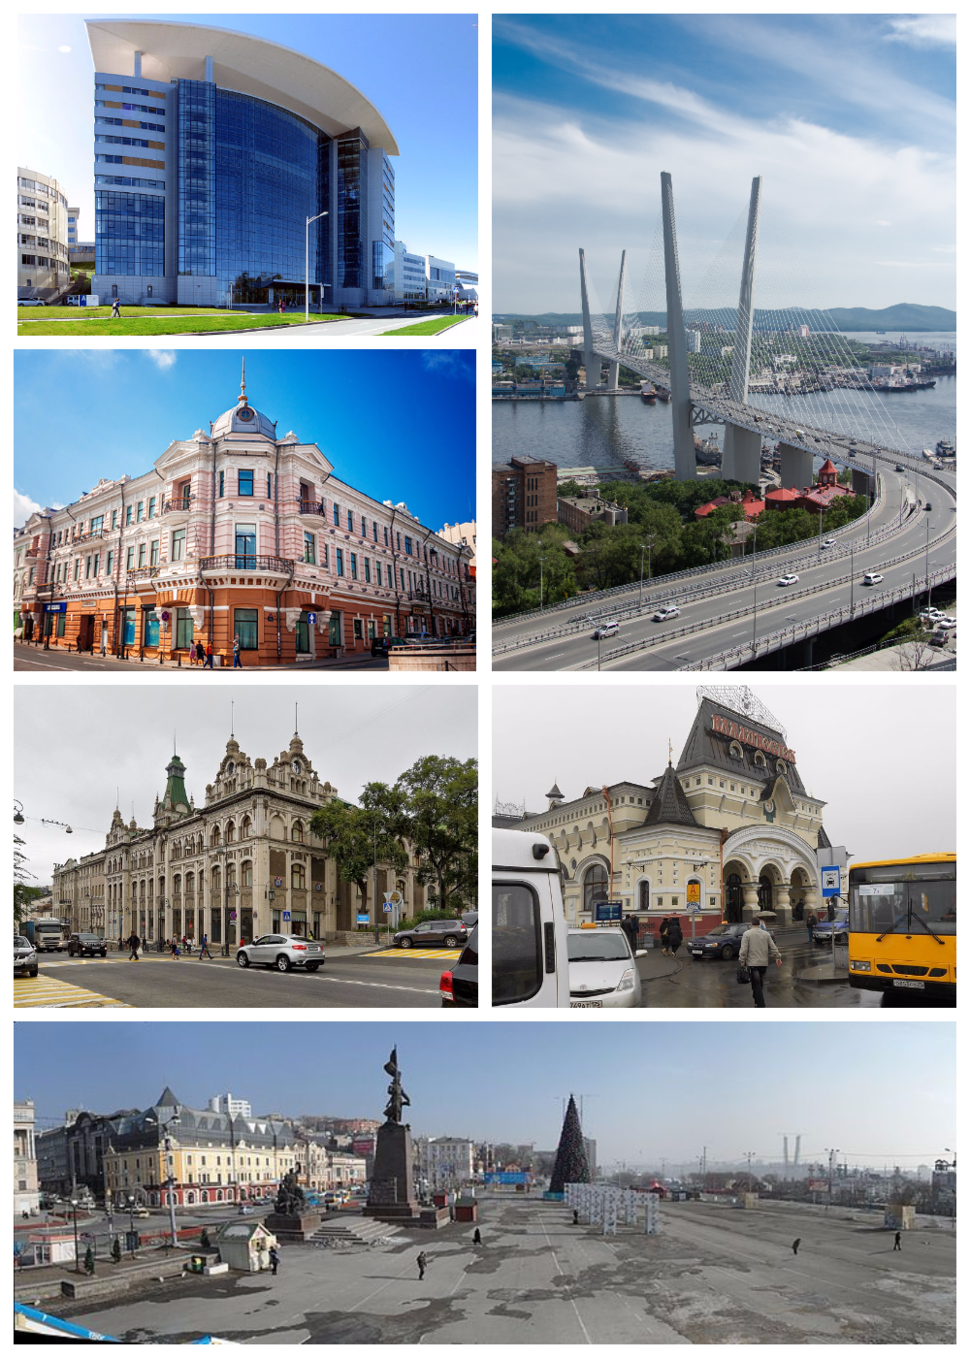 Clockwise from top: view of Vladivostok and the Golden Horn Bay, Russky Bridge, Zolotoy Bridge, Far Eastern Federal University, Square of the Fighters for Soviet Power in the Far East, Километровый столб 9288, Vladivostok terminus of the Trans-Siberian Railway, Arseniev State Museum, Primorye Oceanarium